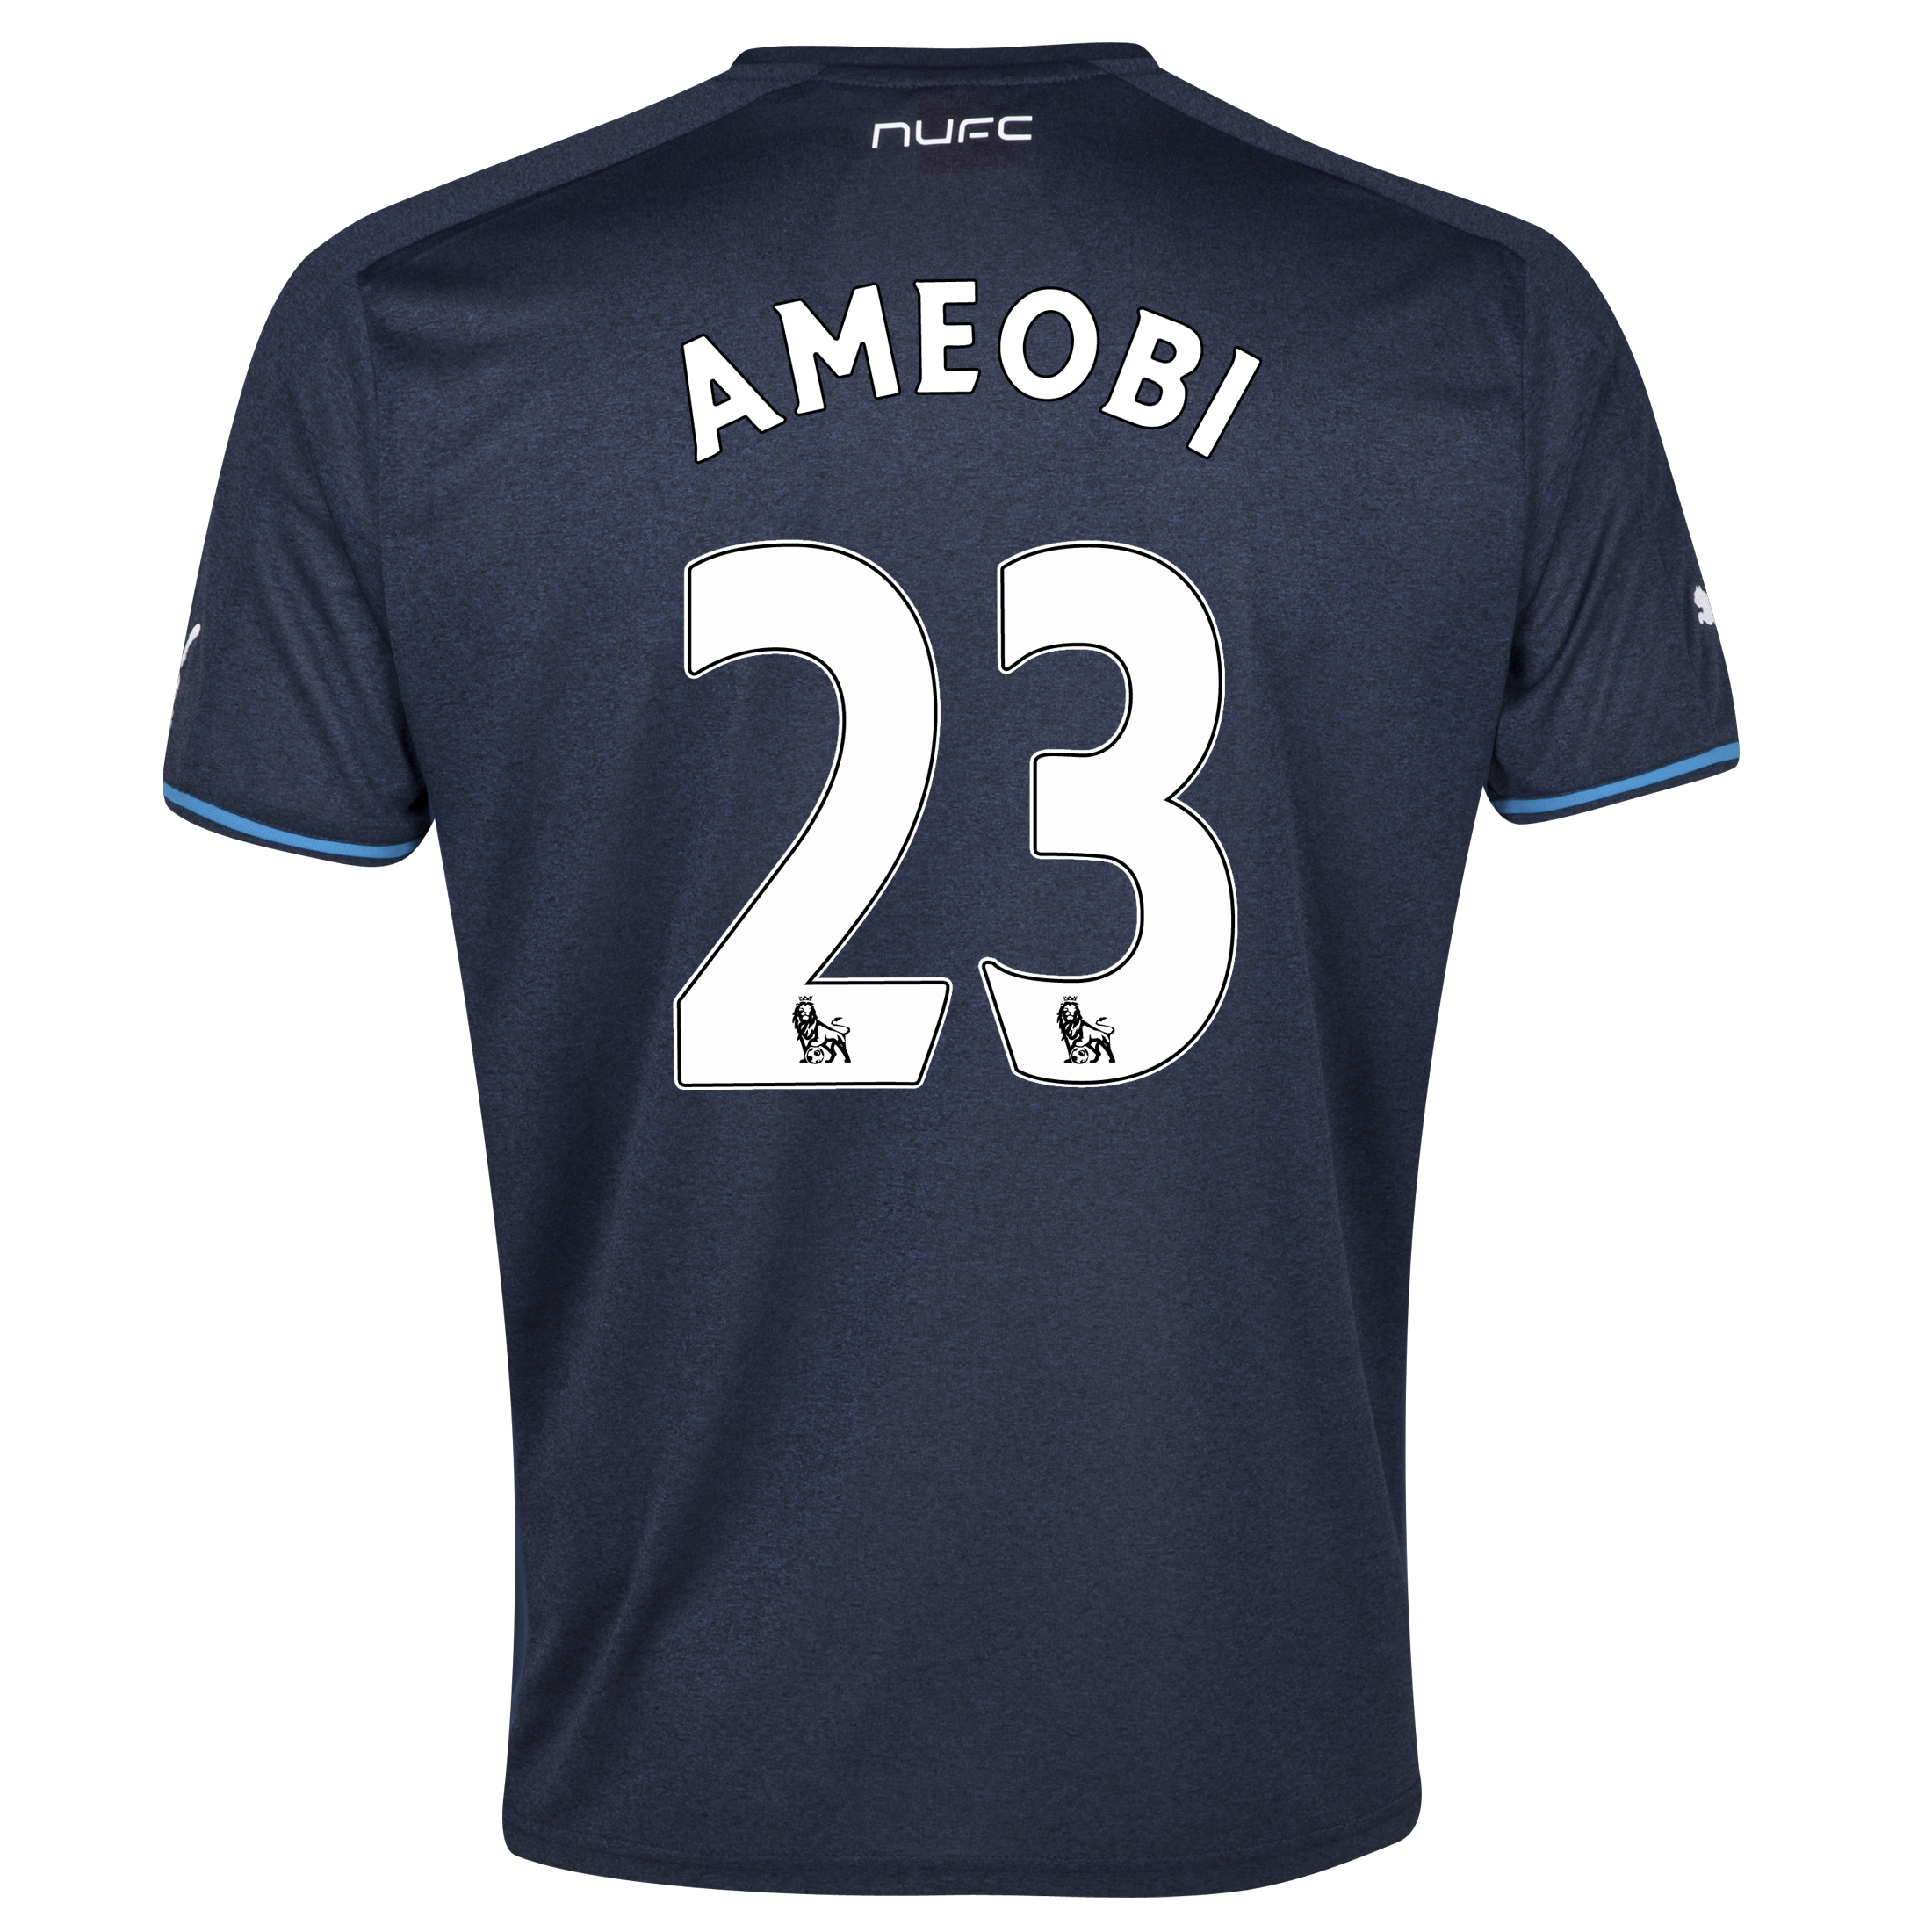 Newcastle United Away Shirt 2013/14 - kids with Ameobi 23 printing